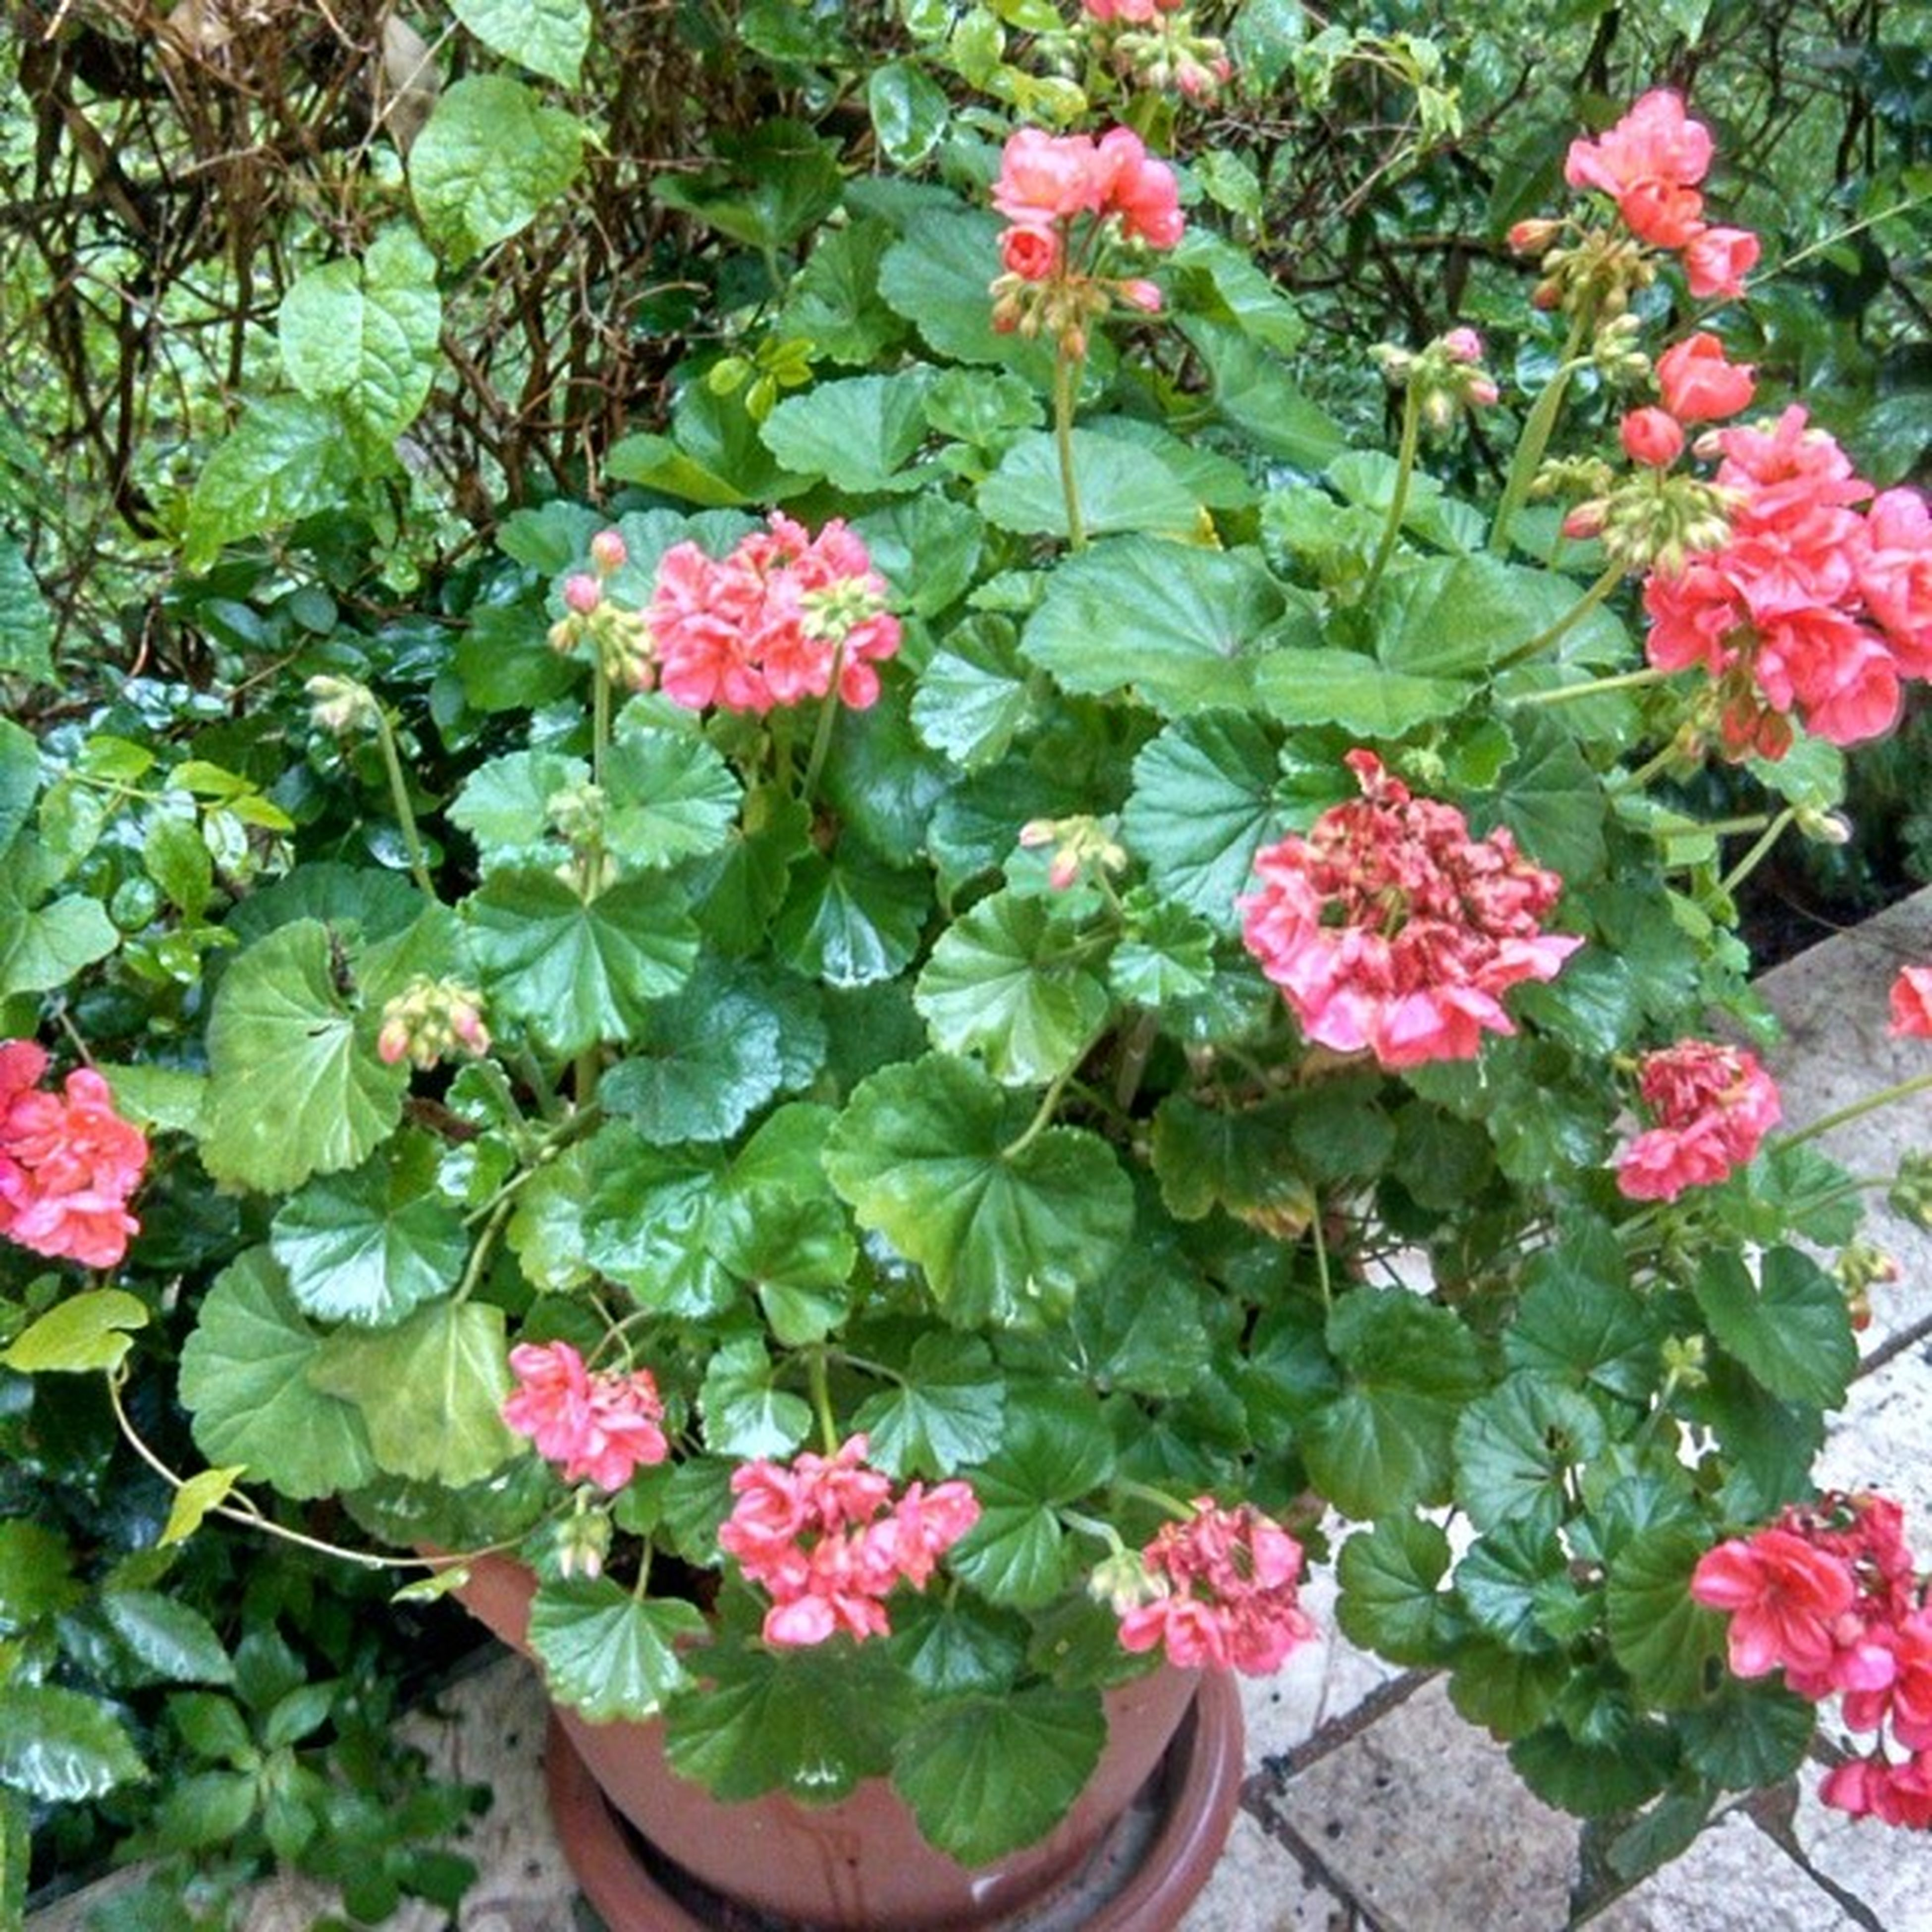 flower, freshness, fragility, pink color, growth, petal, beauty in nature, leaf, plant, nature, blooming, flower head, high angle view, in bloom, blossom, green color, potted plant, outdoors, botany, springtime